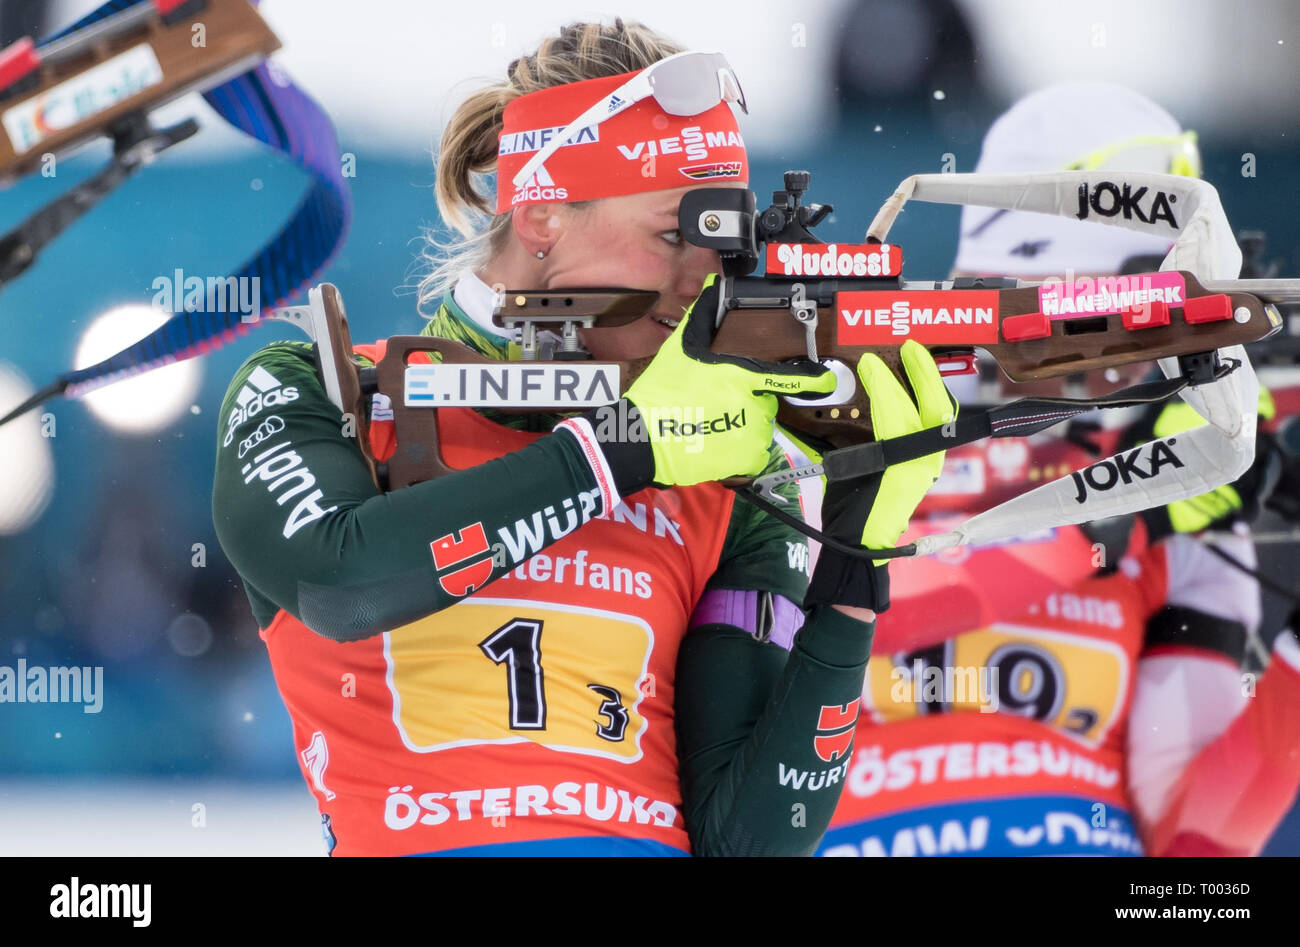 Östersund, Sweden. 16th March 2019.  World Championship, Relay 4 x 6 km, Women. Denise Herrmann from Germany in action while shooting. Credit: dpa picture alliance/Alamy Live News Credit: dpa picture alliance/Alamy Live News Credit: dpa picture alliance/Alamy Live News - Stock Image